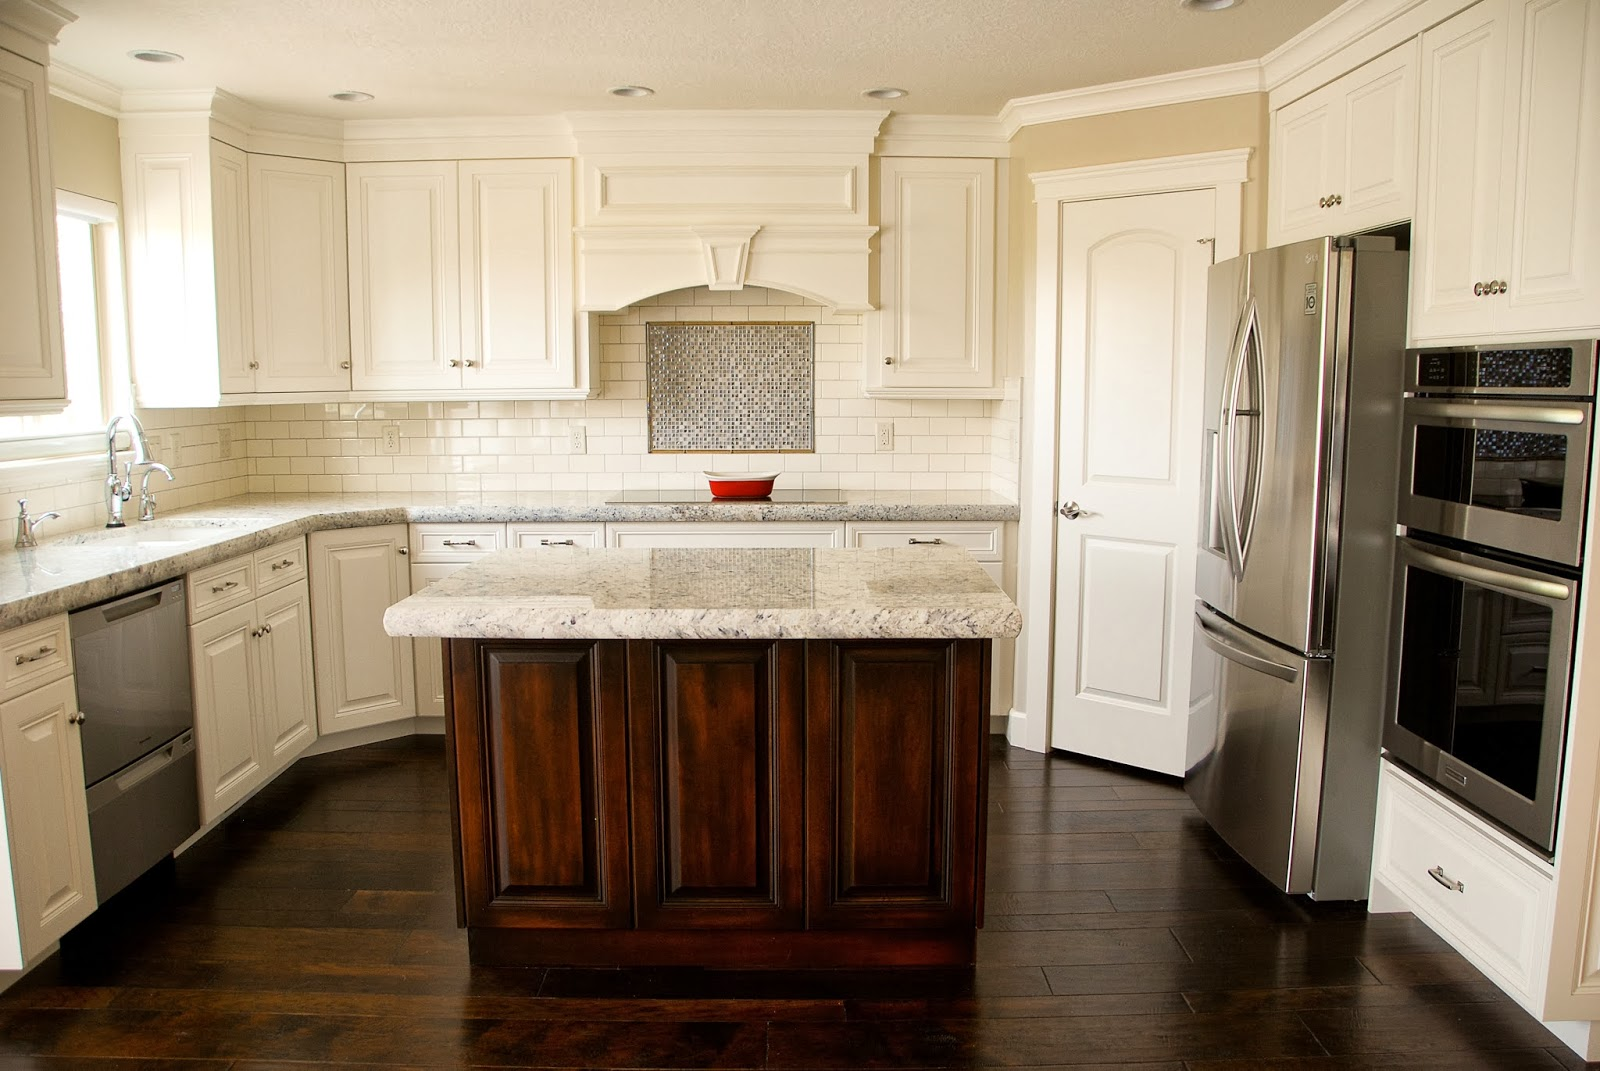 Bianco Romano Granite Kitchen Similiar Bianco Romano Granite Kitchen Countertops Keywords